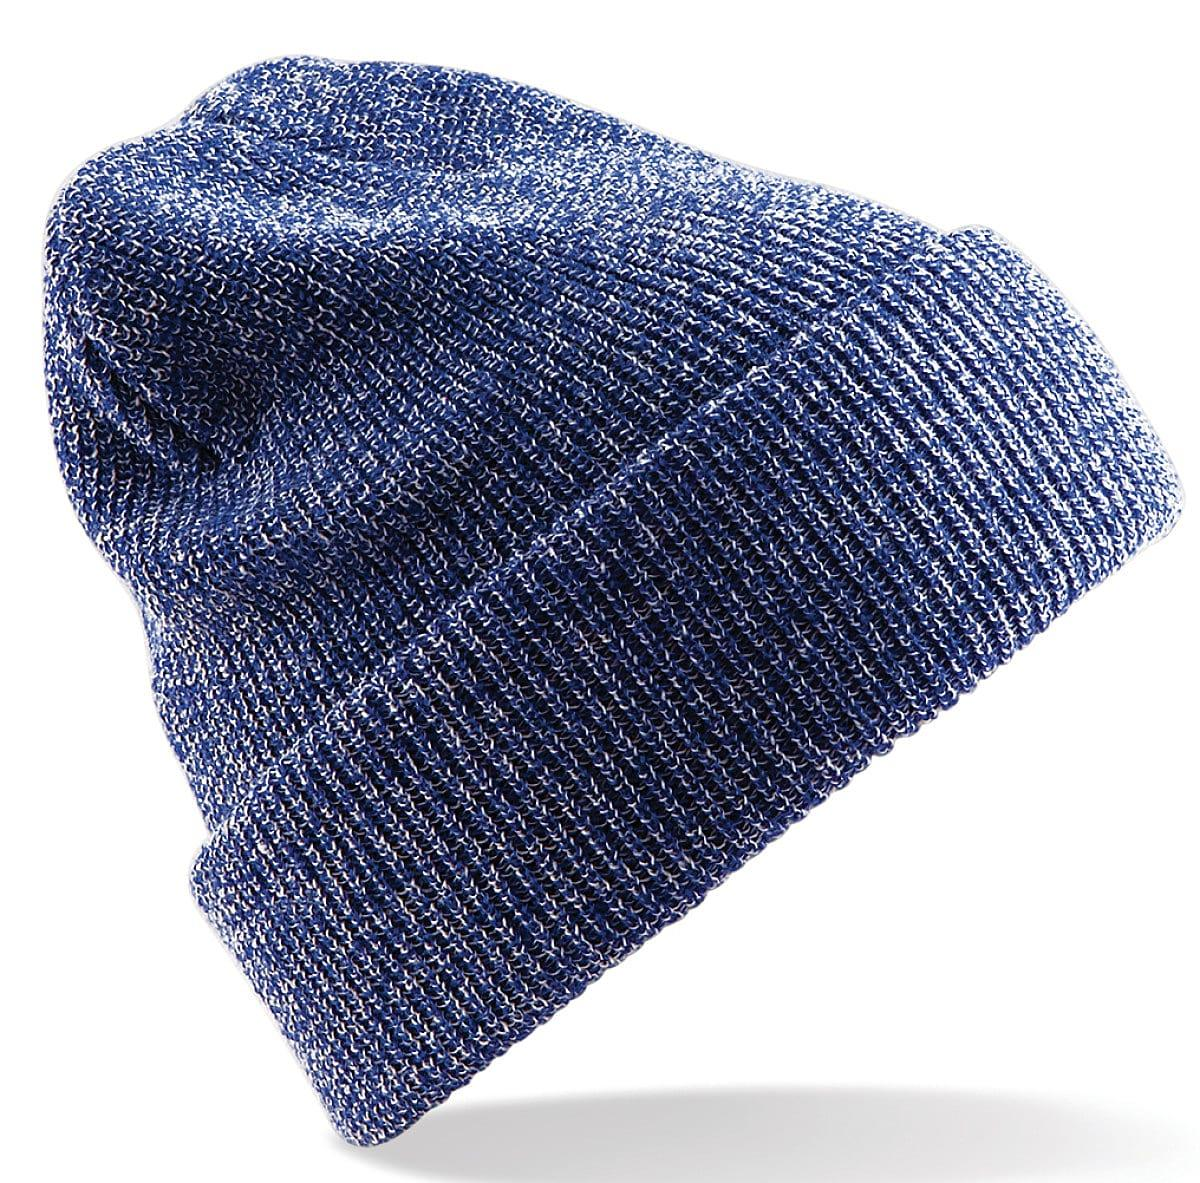 Beechfield Heritage Beanie Hat in Heather Royal Blue (Product Code: B425)